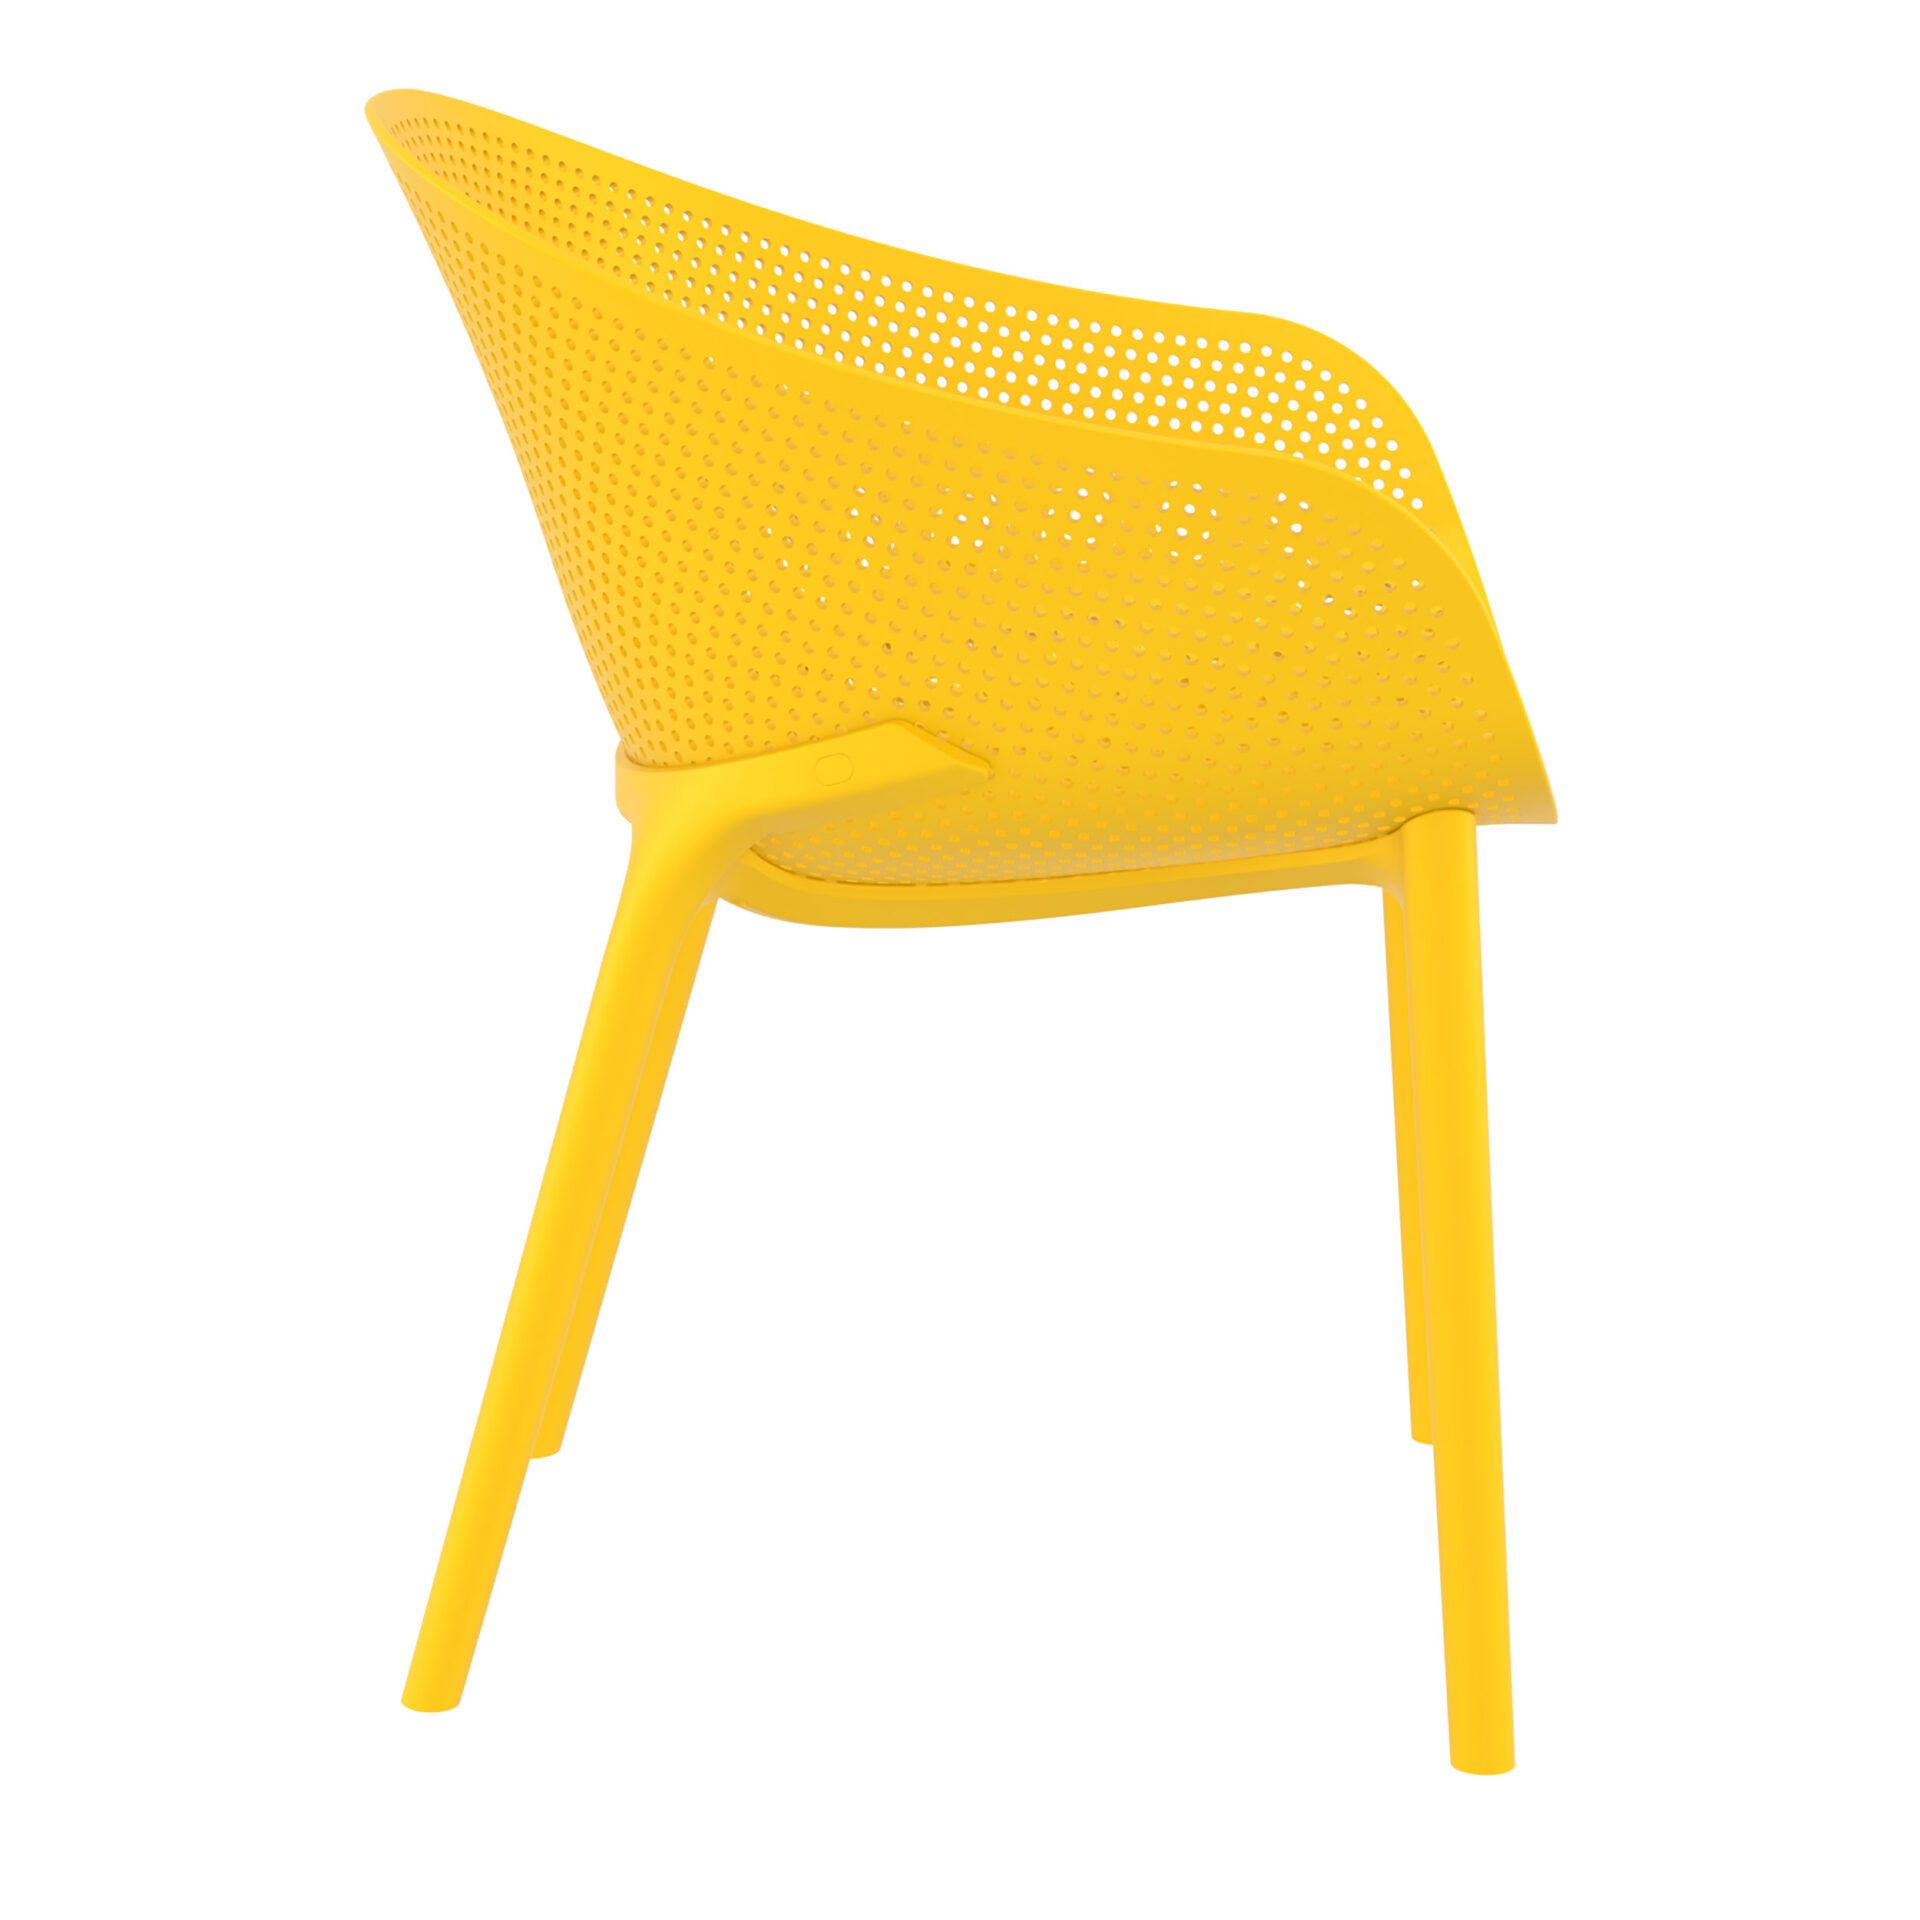 outdoor seating polypropylene sky chair yellow side